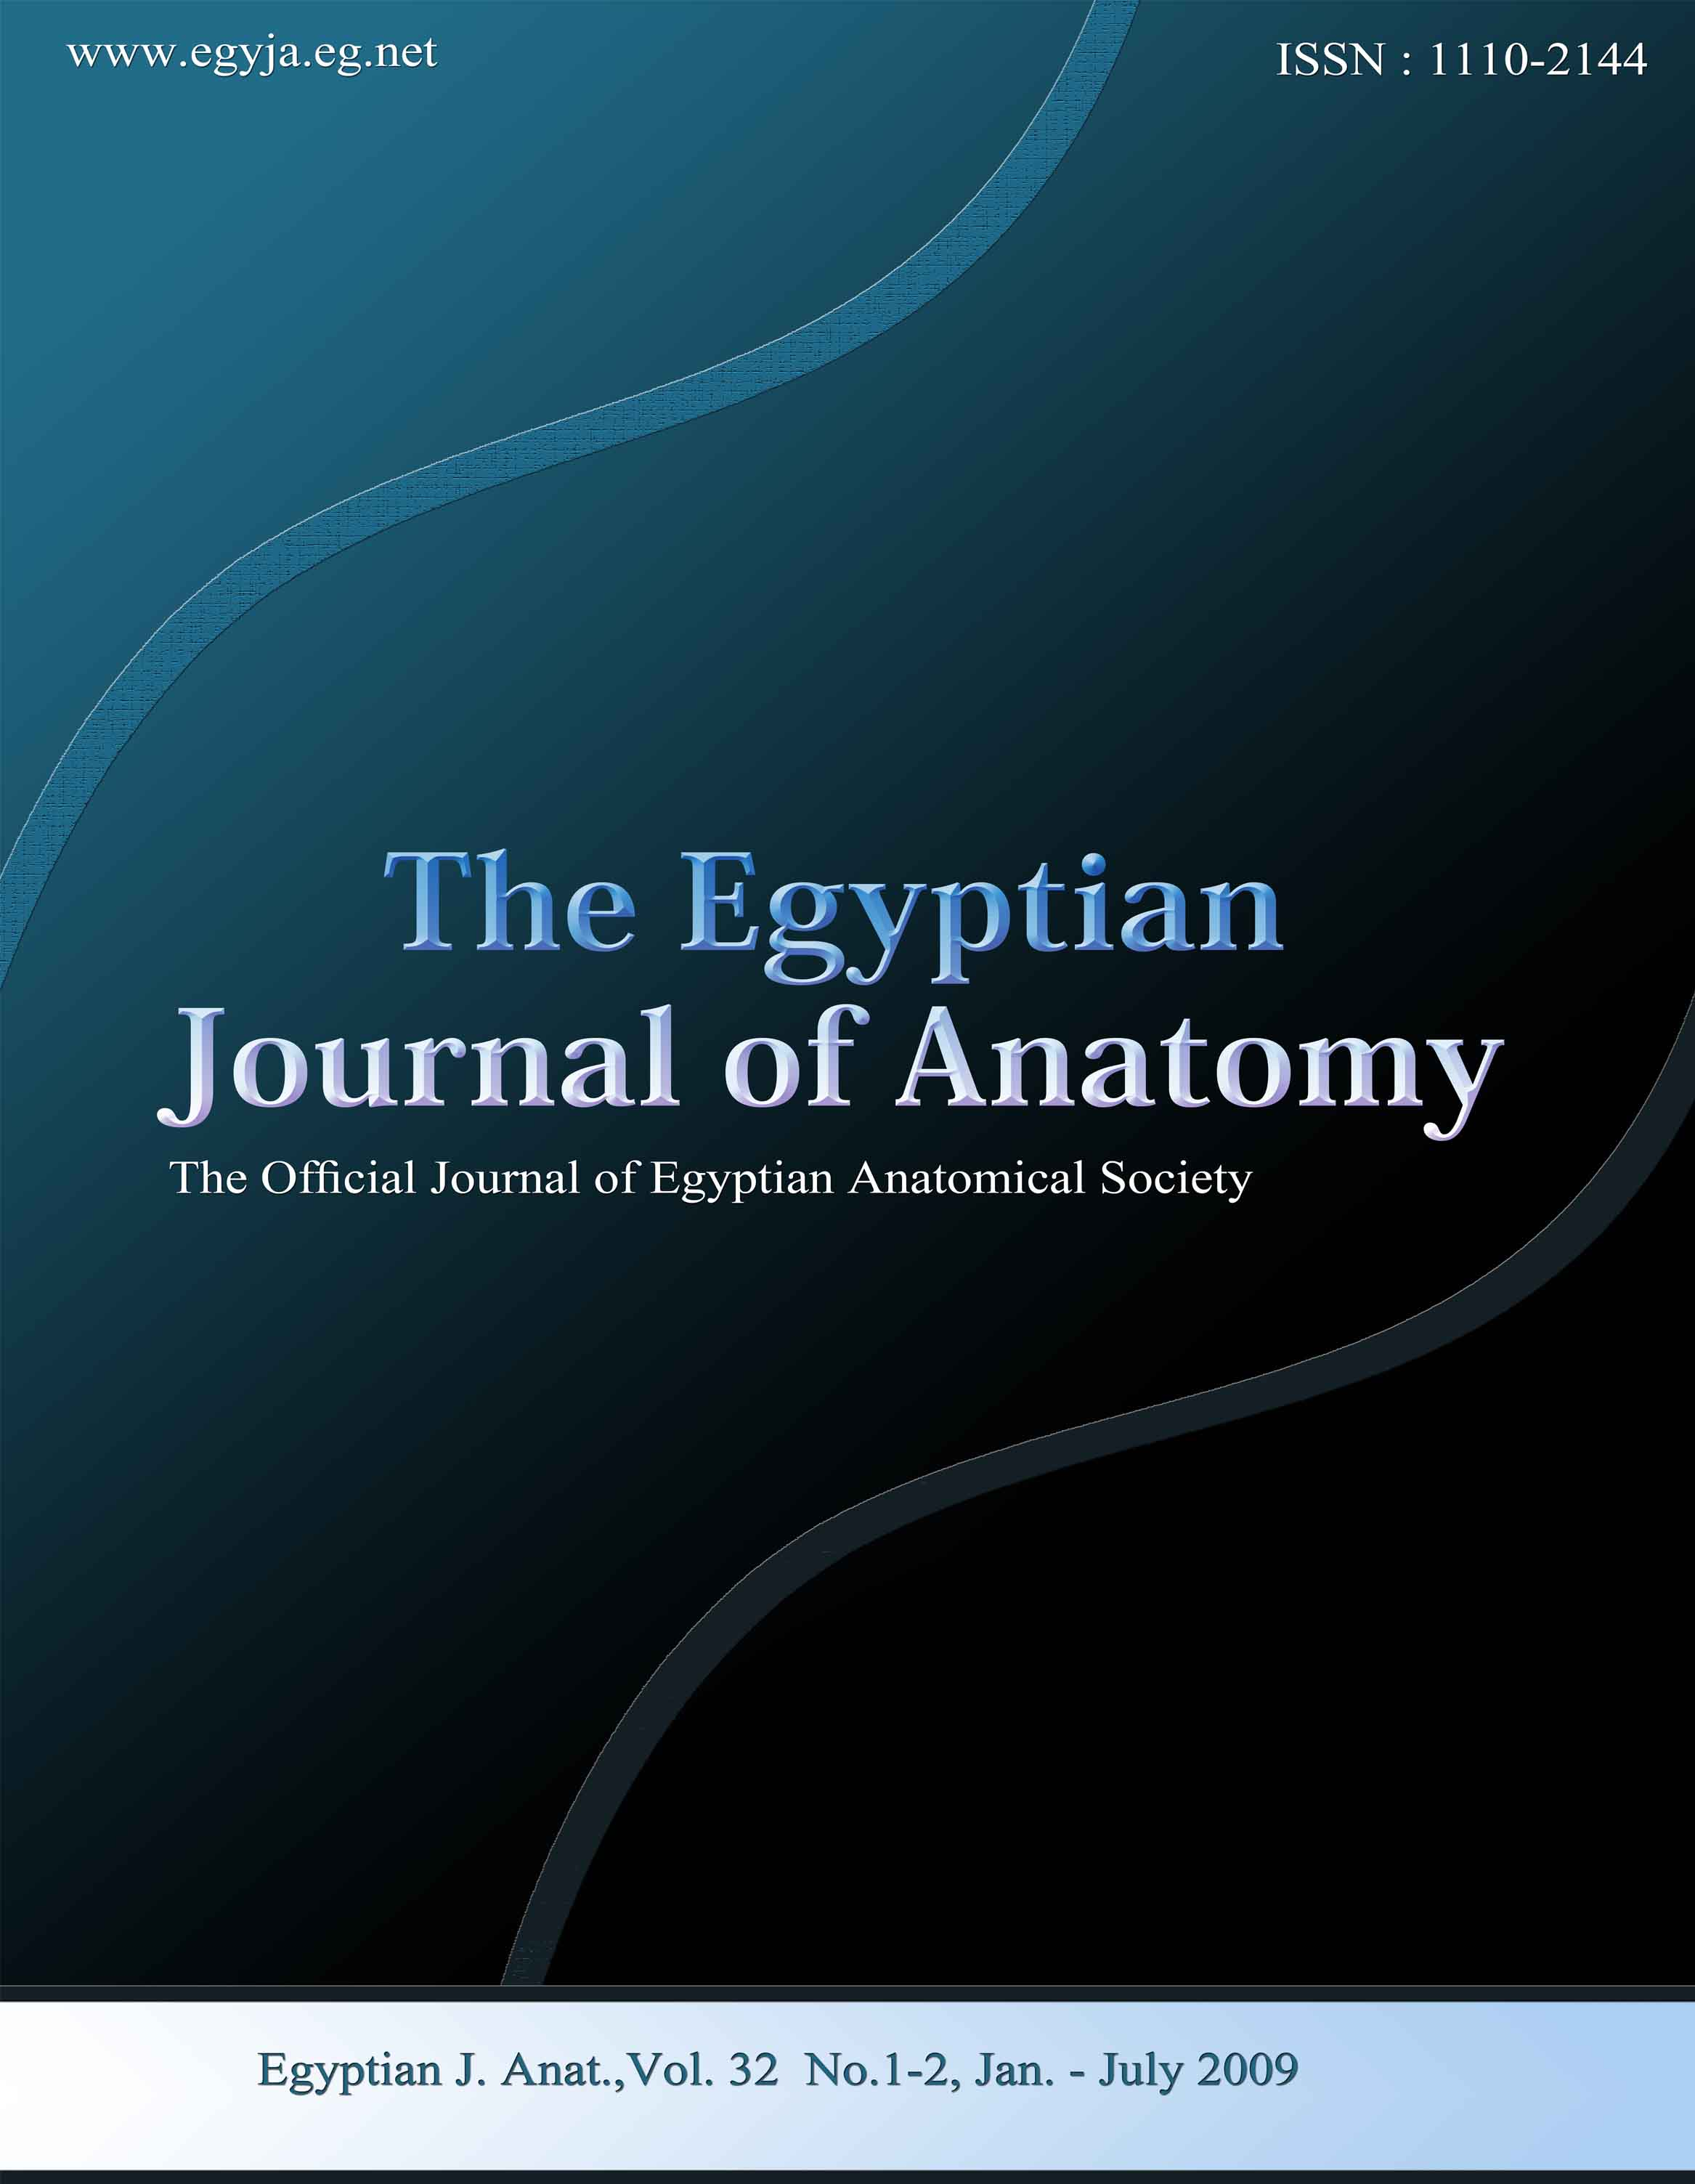 The Egyptian Journal of Anatomy